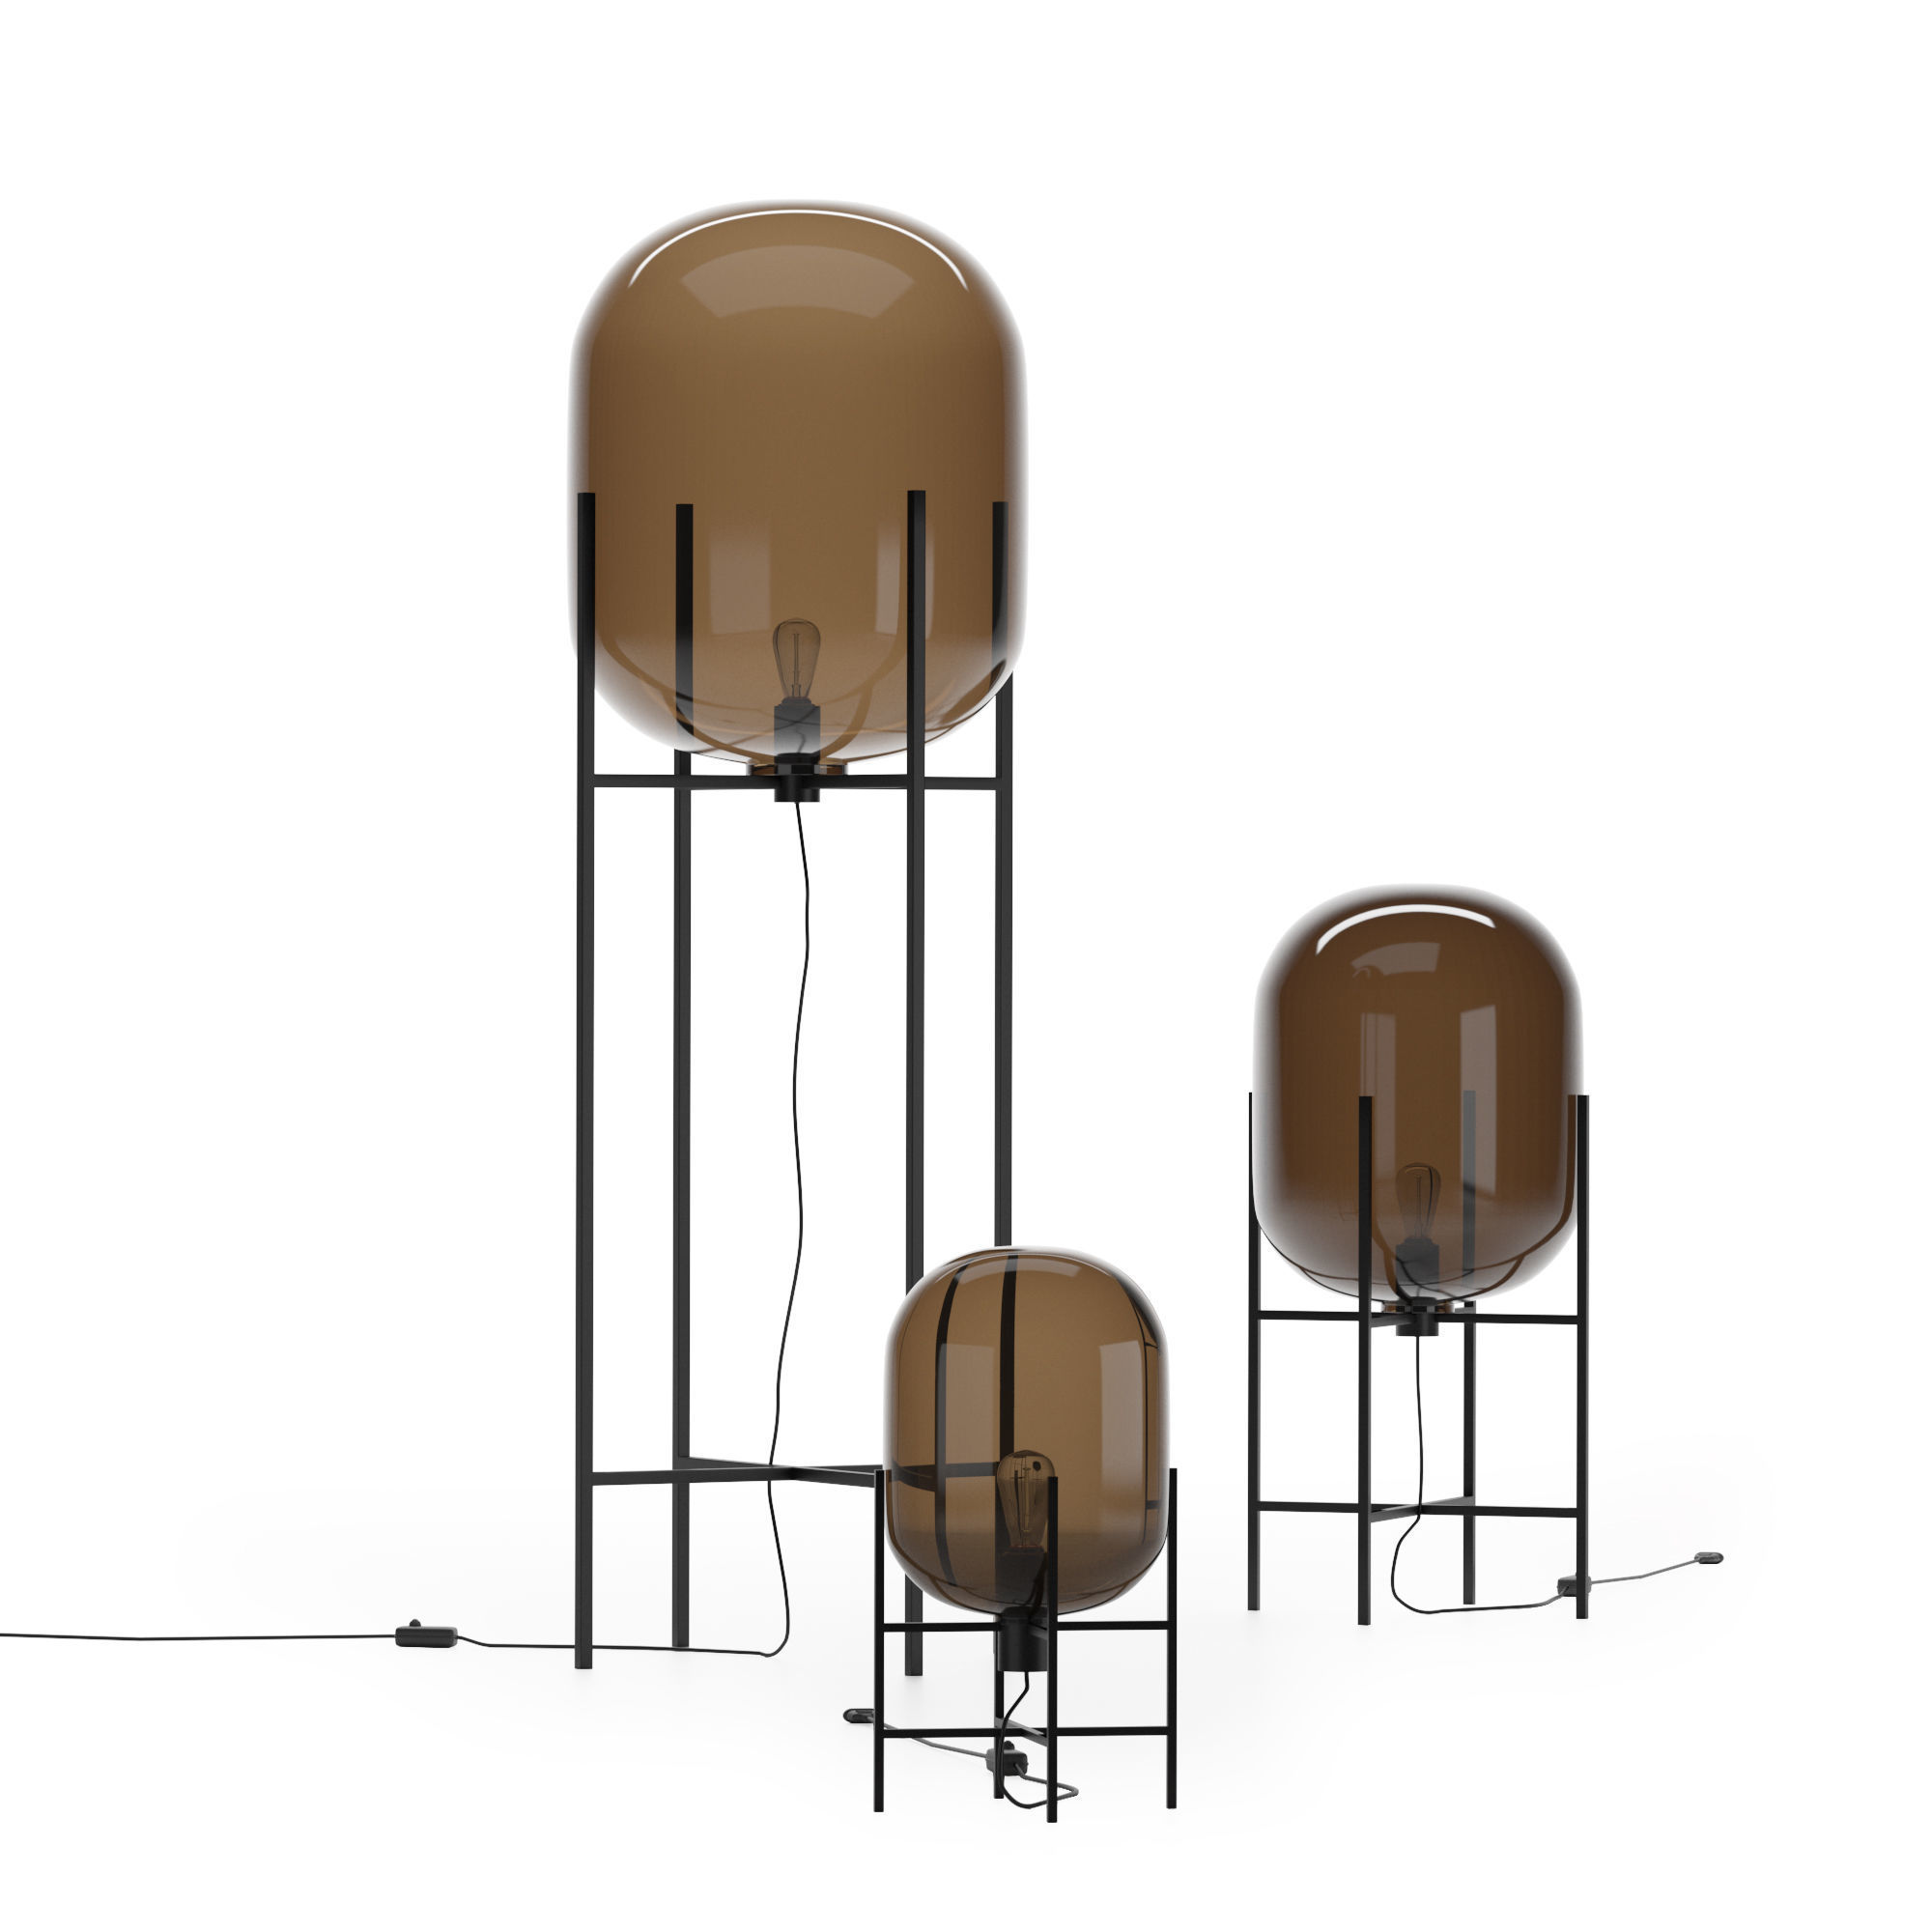 Replica Oda lamp collection - Floor and table lamps